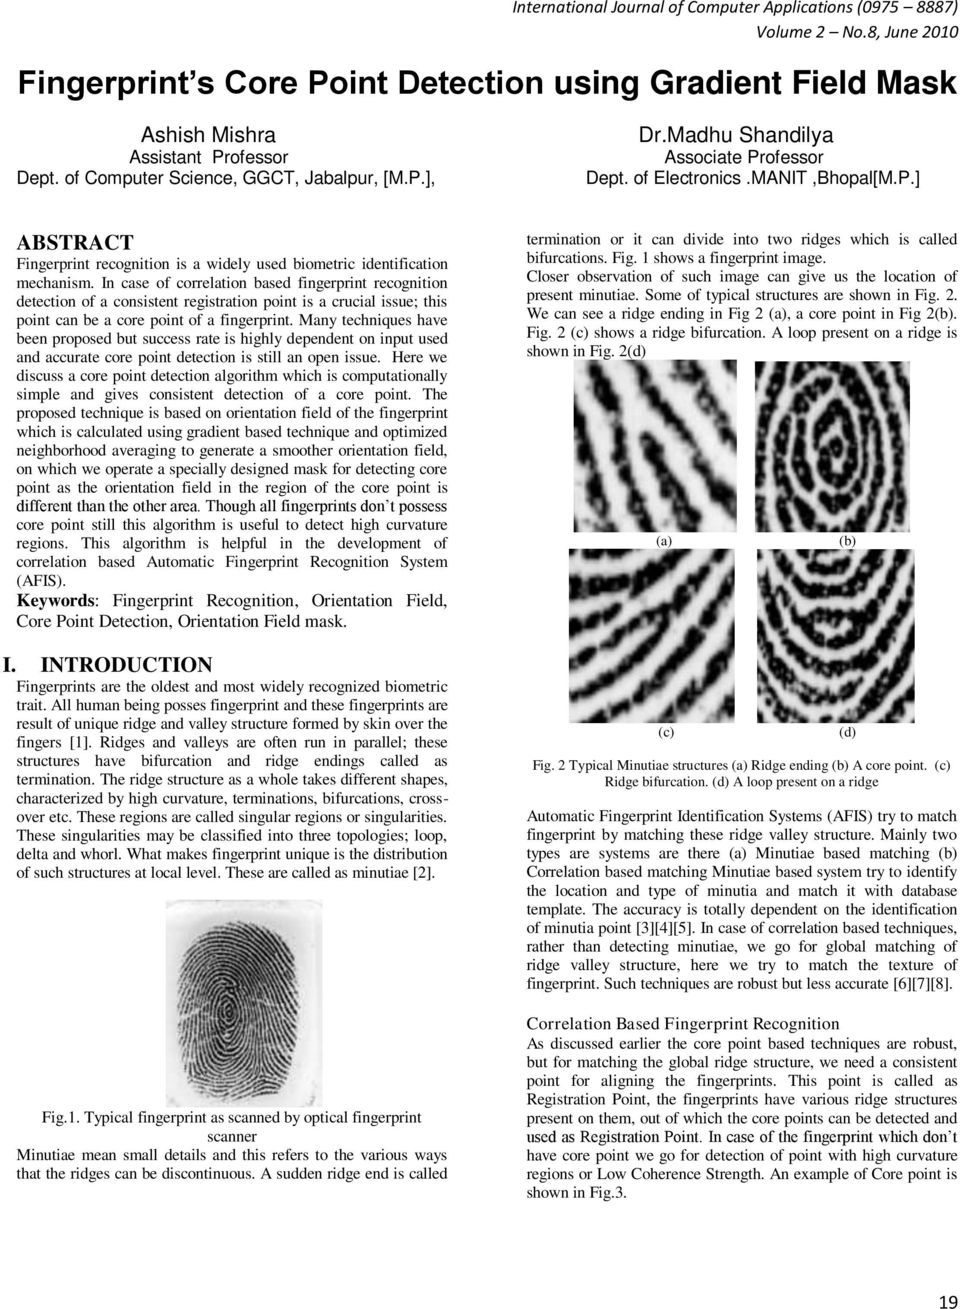 In case of correlation based fingerprint recognition detection of a consistent registration point is a crucial issue; this point can be a core point of a fingerprint.